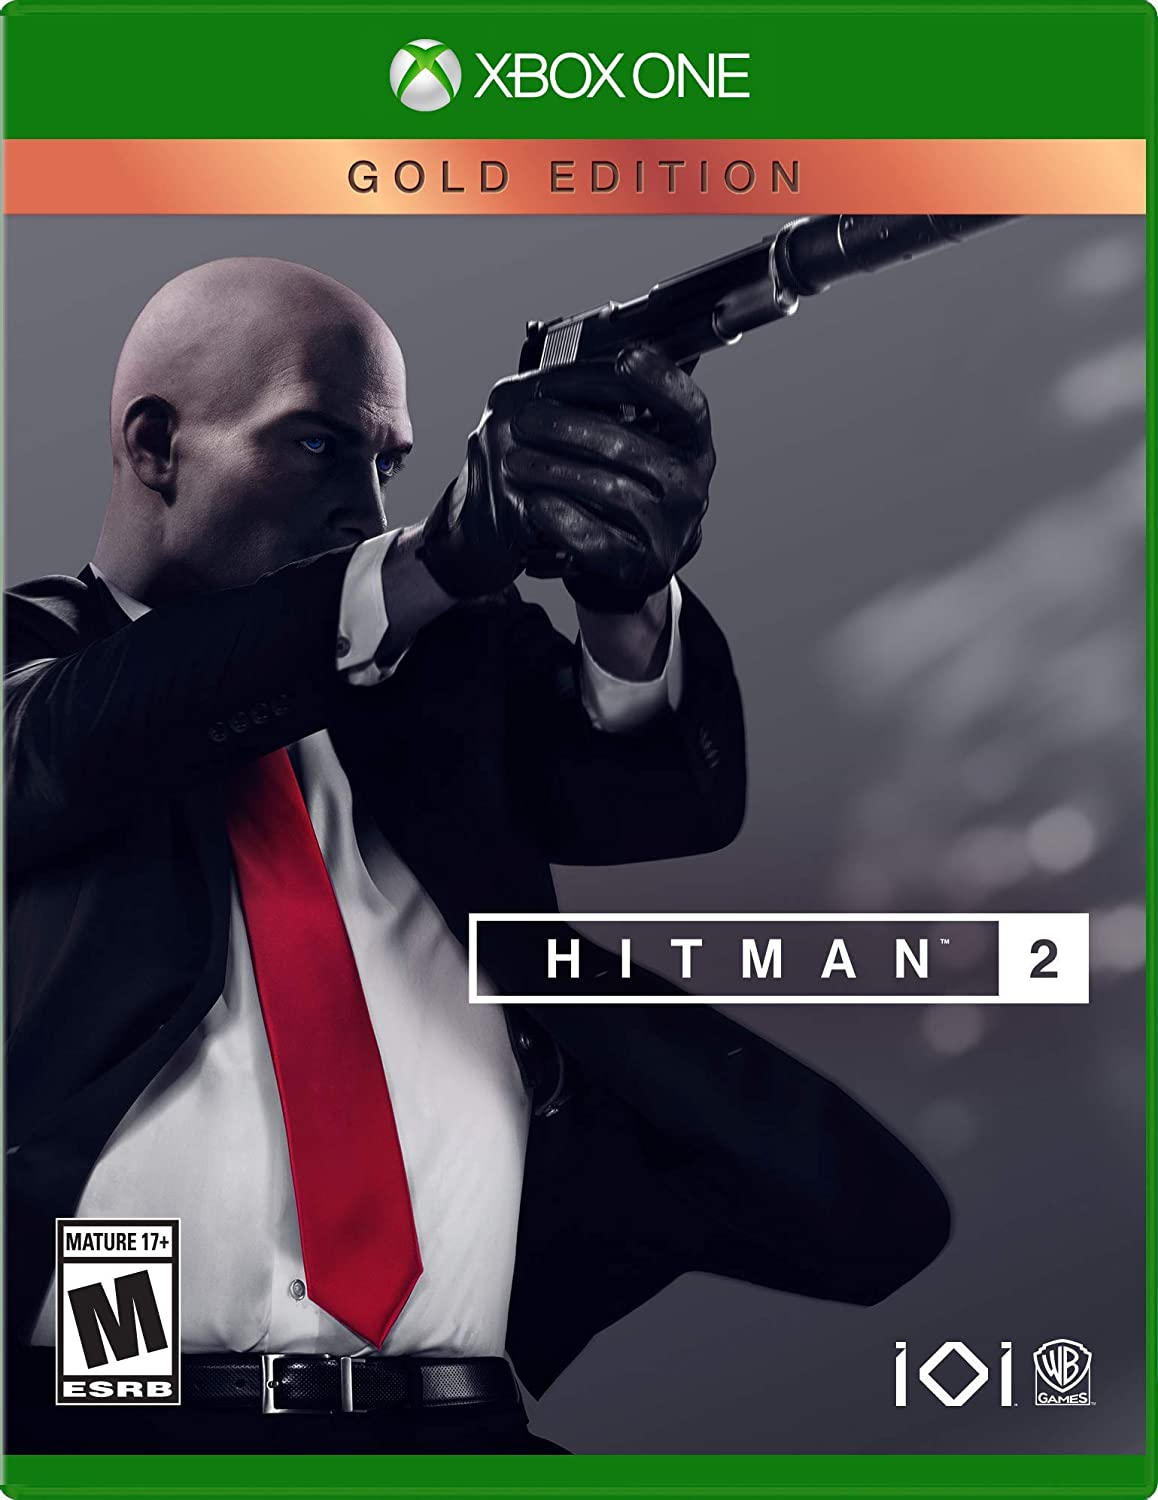 Hitman 2 - Gold Edition for Xbox One [USA]: Amazon.es: Whv Games: Cine y Series TV